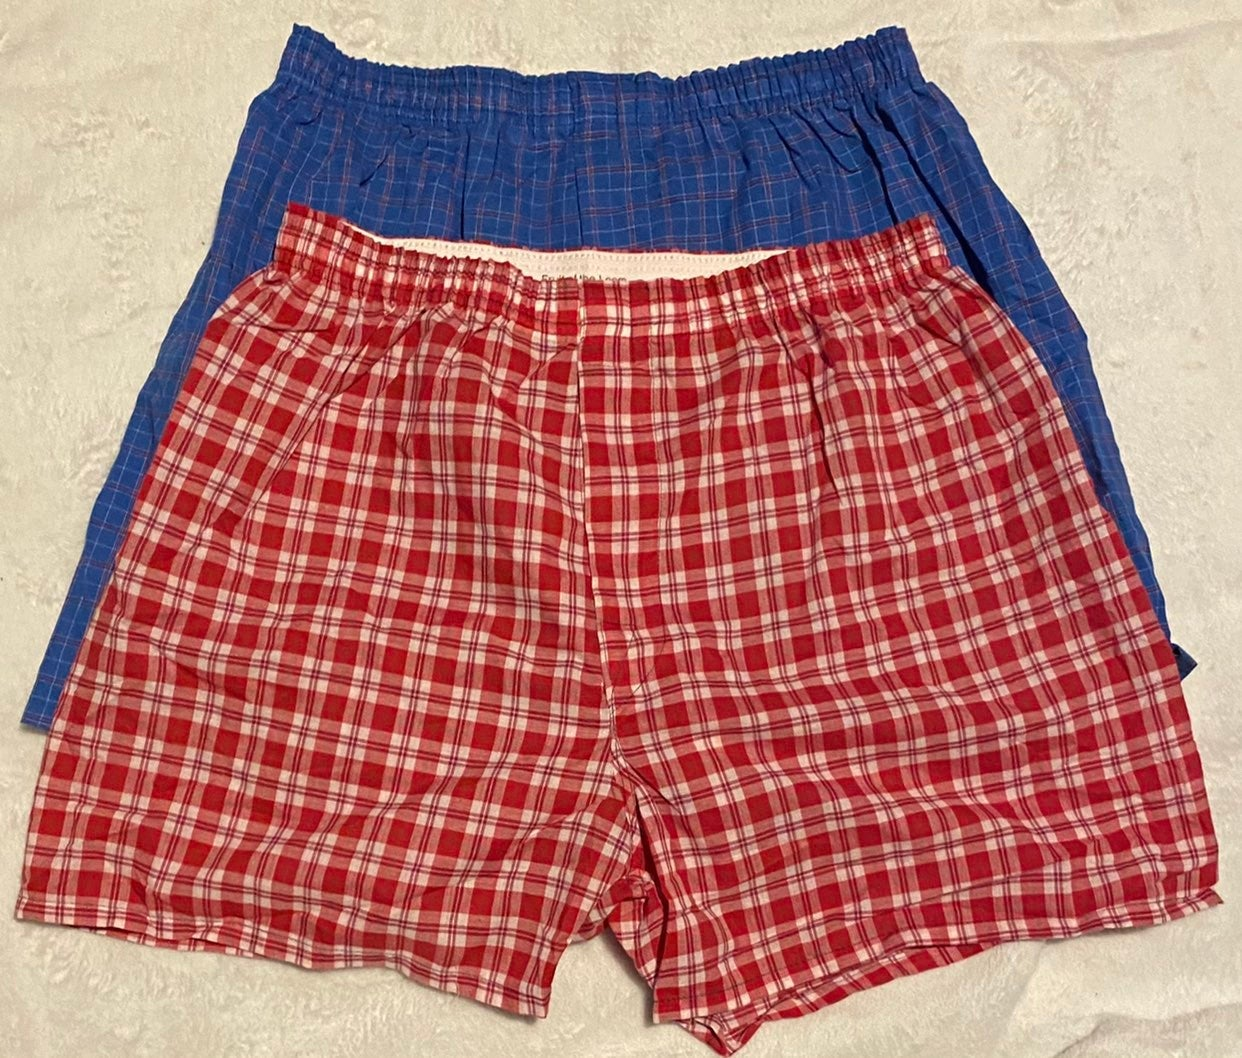 2 pair FOTL Boxer Shorts M 32-34 NEW